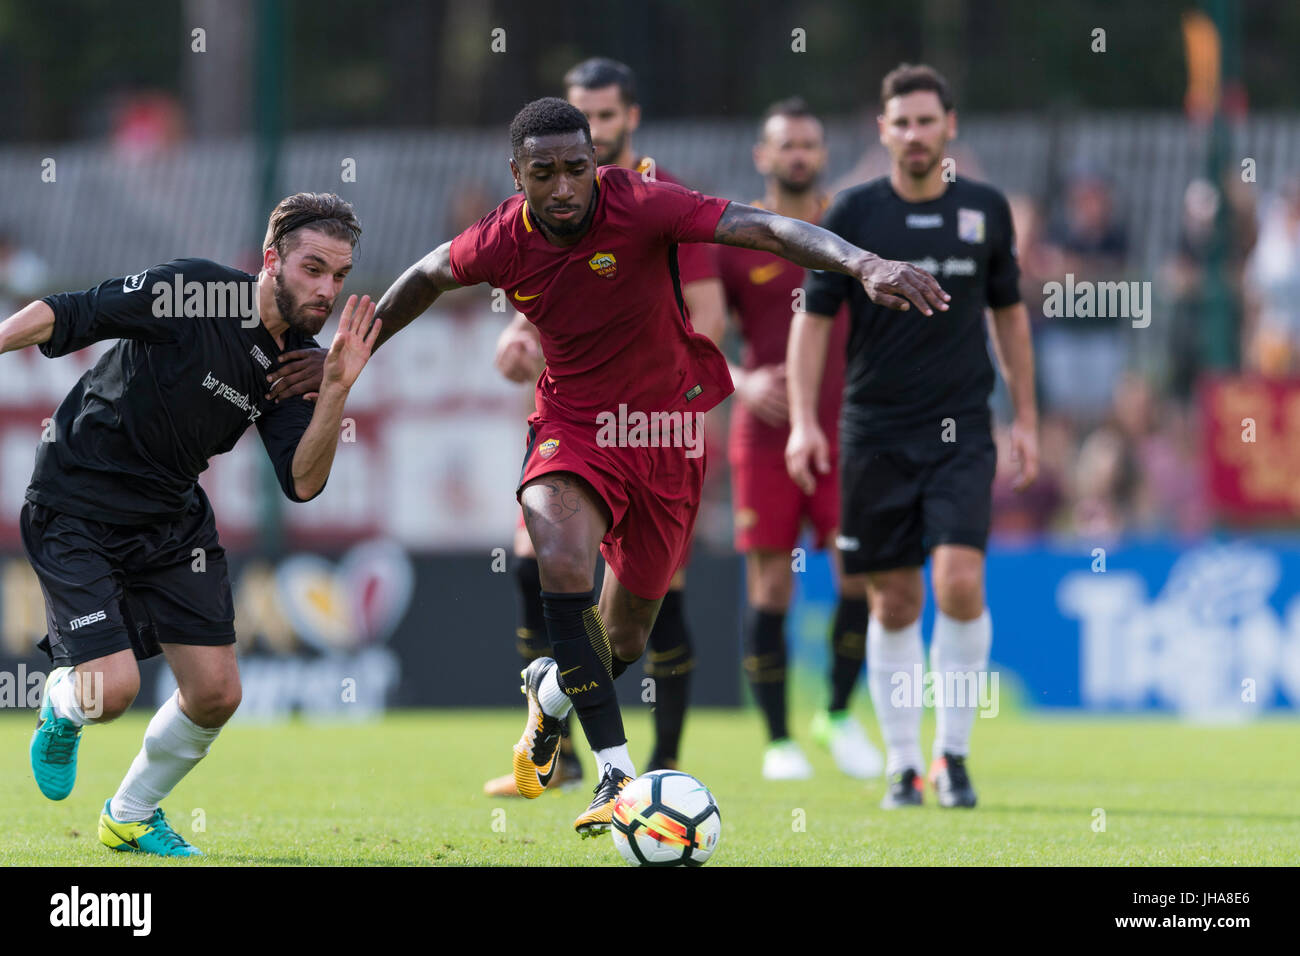 Pinzolo Italy 11th July 2017 Gerson Roma Football Soccer